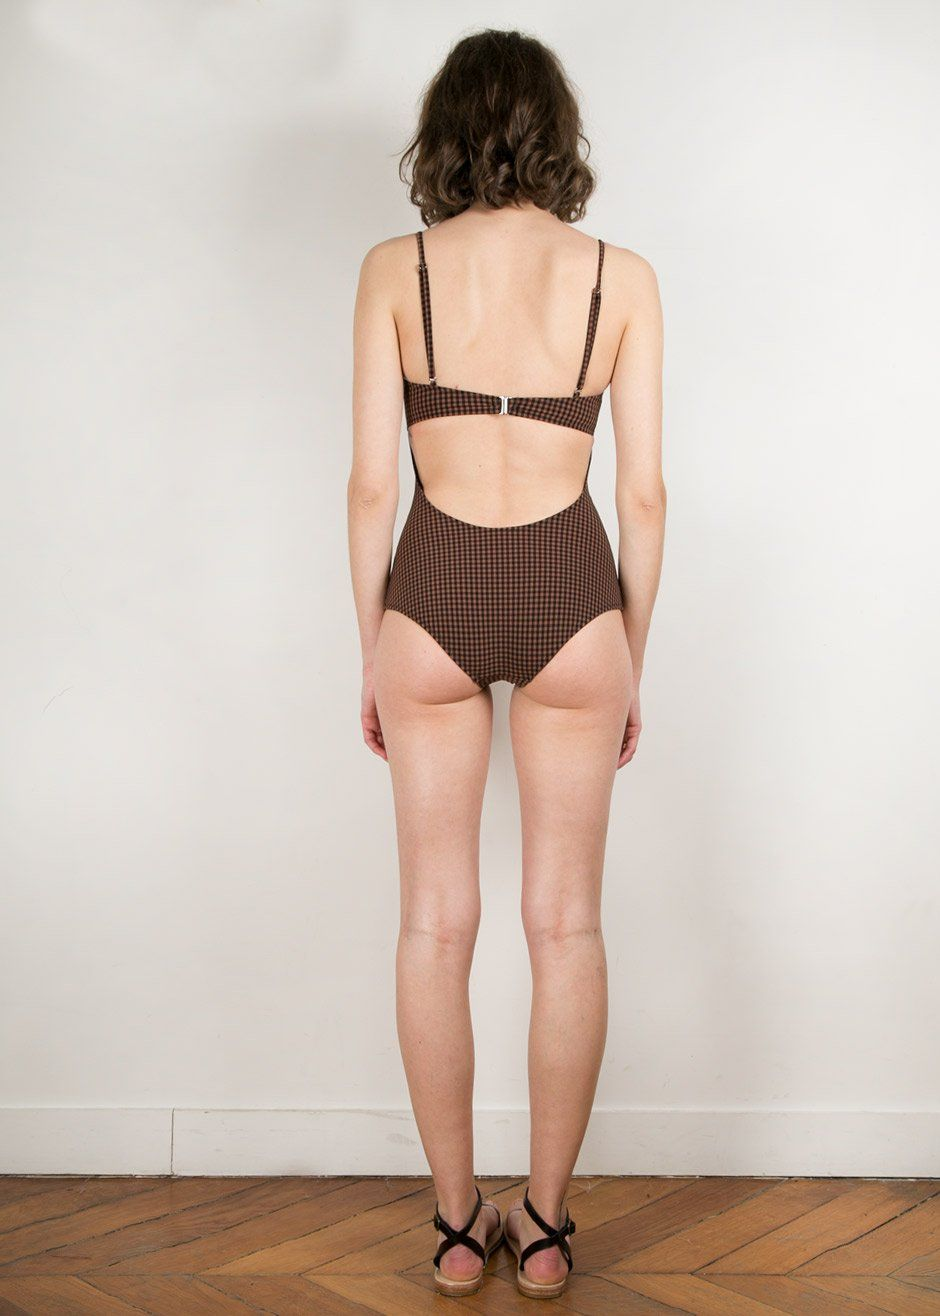 Pale Swimwear Ma  Swimsuit in Brown Gingham